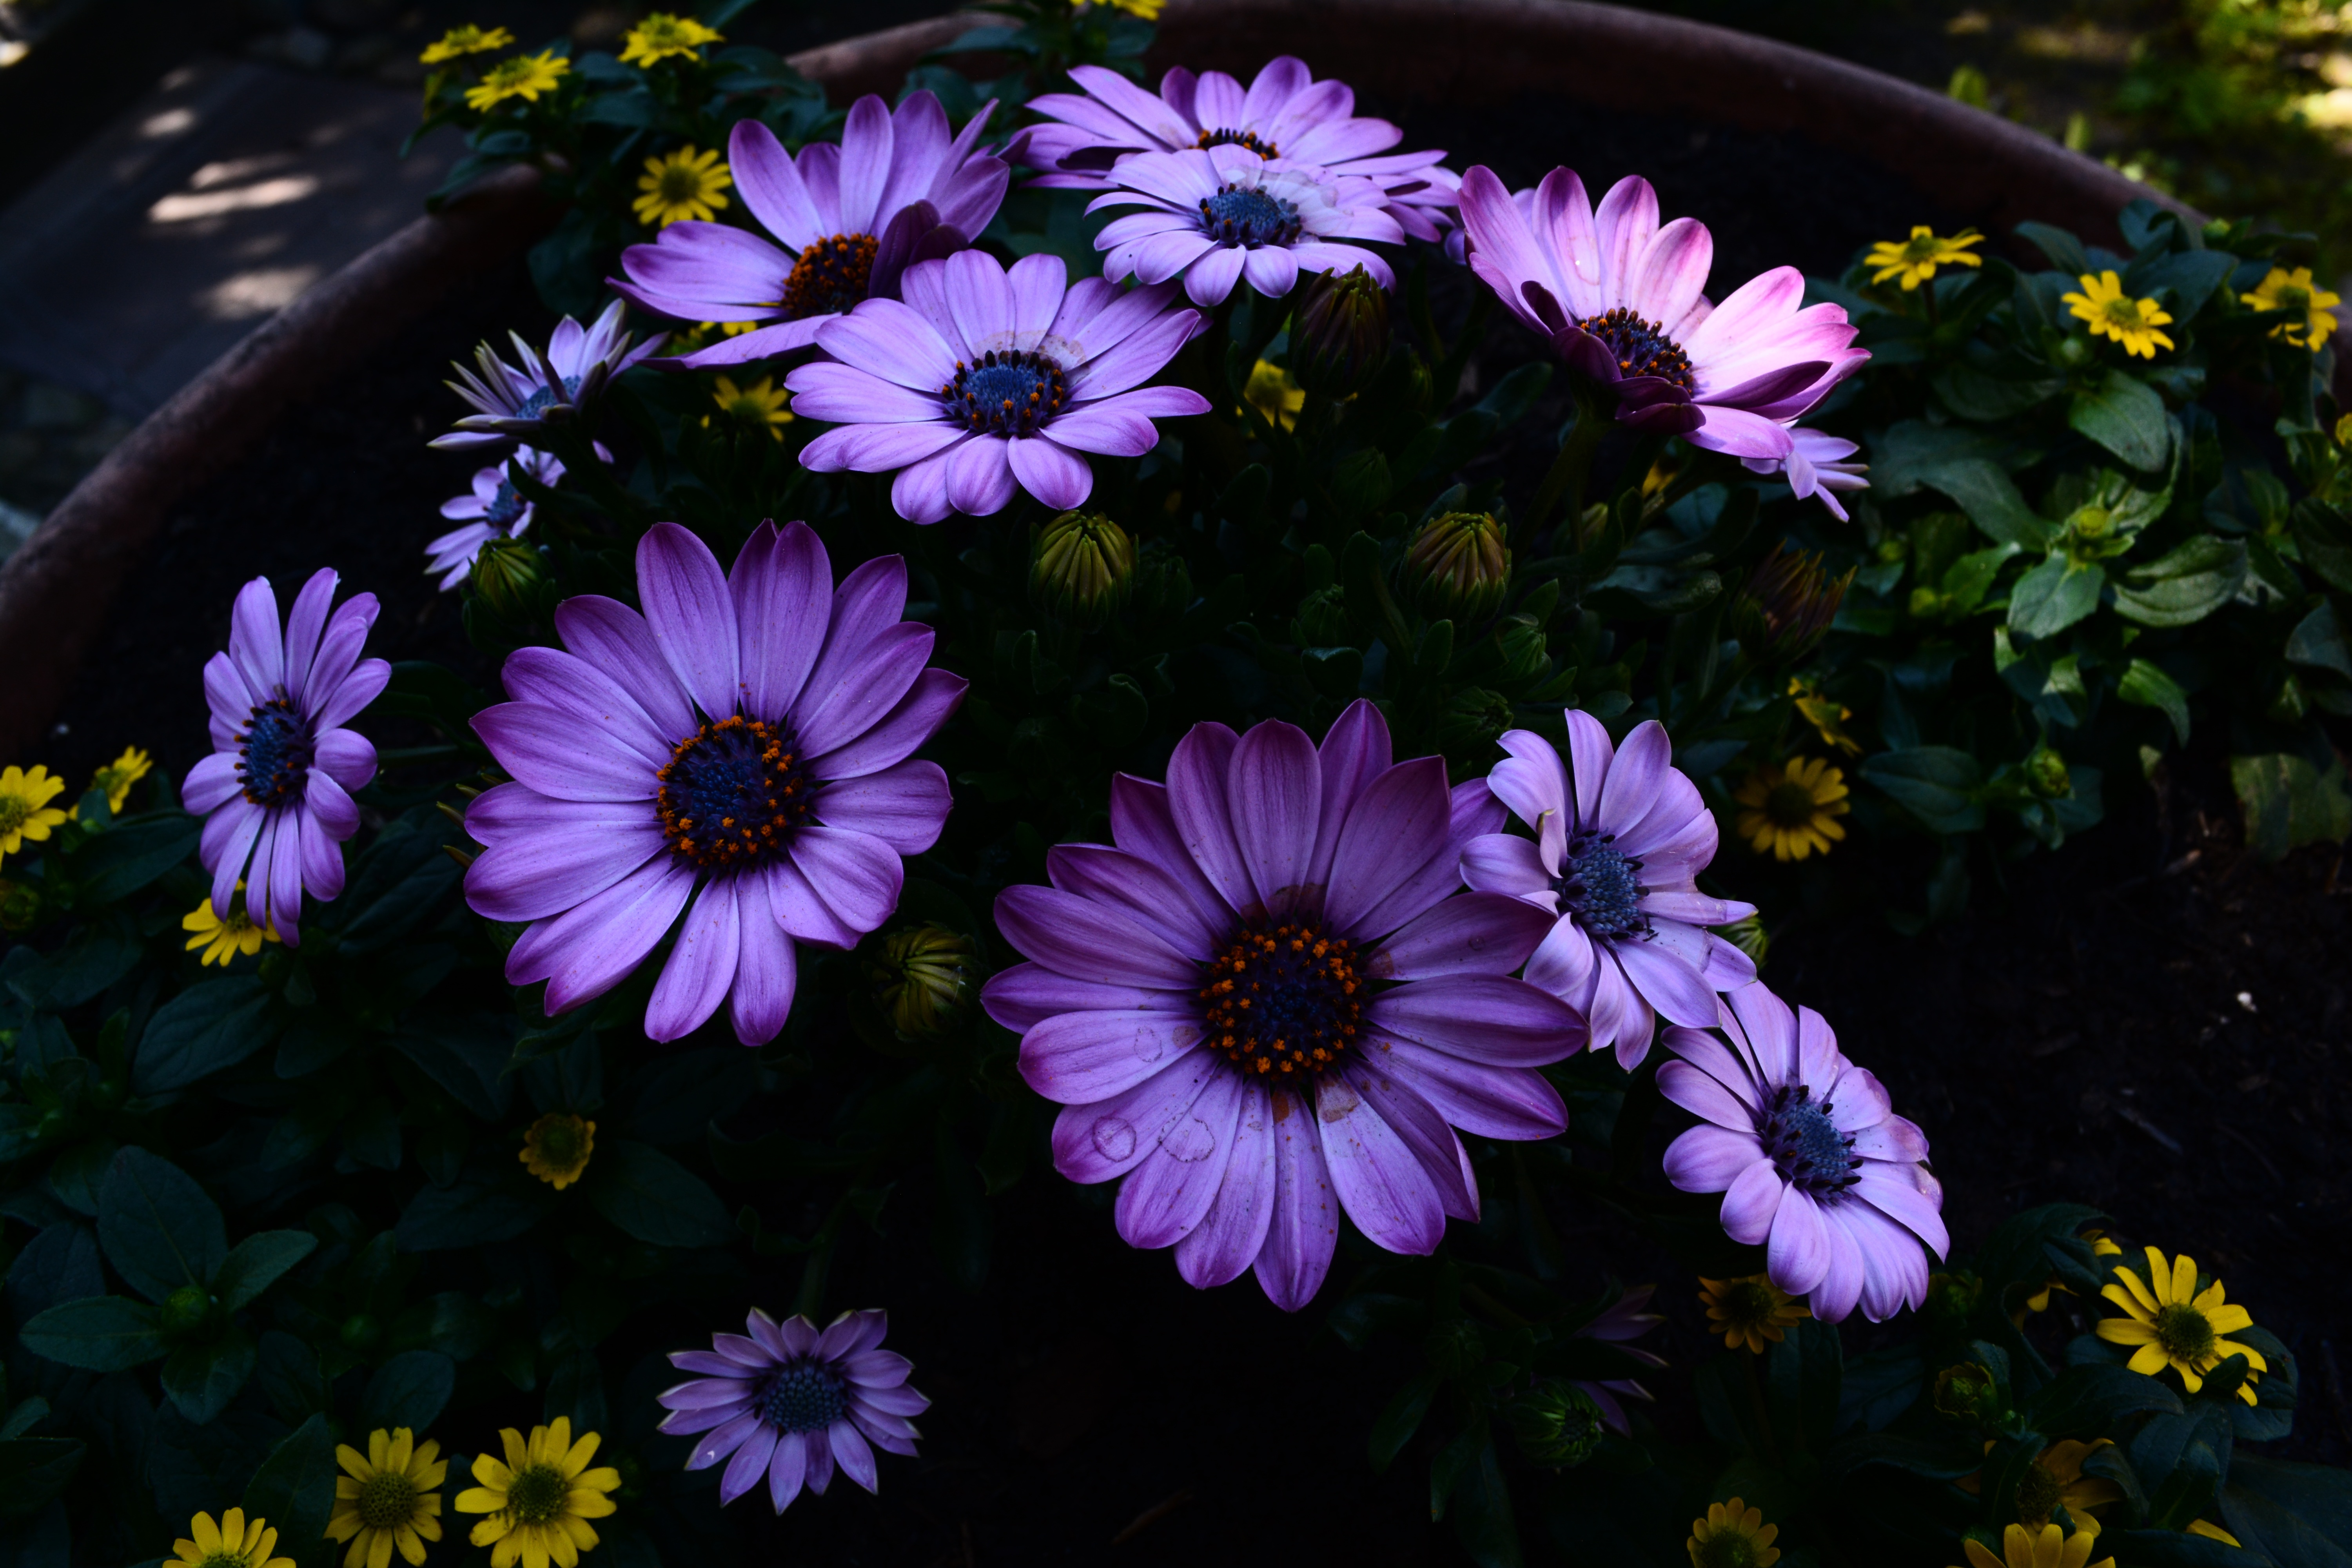 75536 Screensavers and Wallpapers Flower Bed for phone. Download Flowers, Flower Bed, Flowering, Flowerbed, Blooming, Osteospermum pictures for free